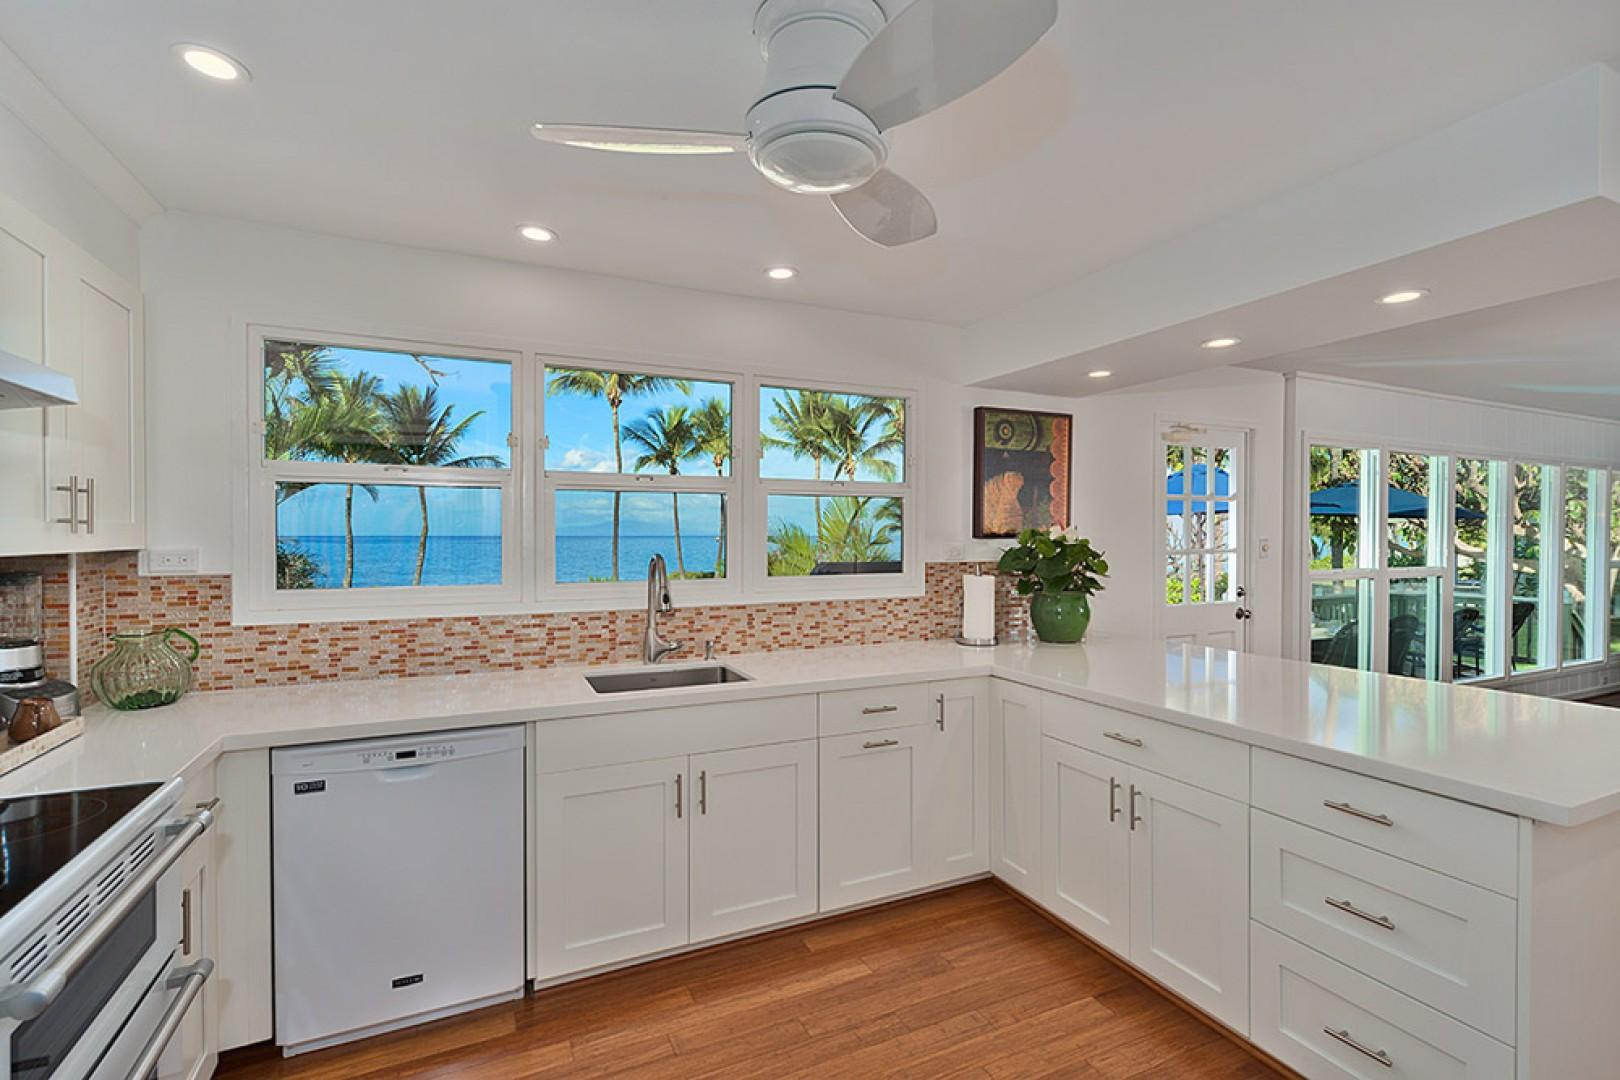 Wailea Sunset Bungalow - Fully Equipped Ocean View Kitchen - Just fully remodeled - all new appliances, cabinets, counters, flooring, and kitchen supplies! Kitchen windows now have woven wood blinds.